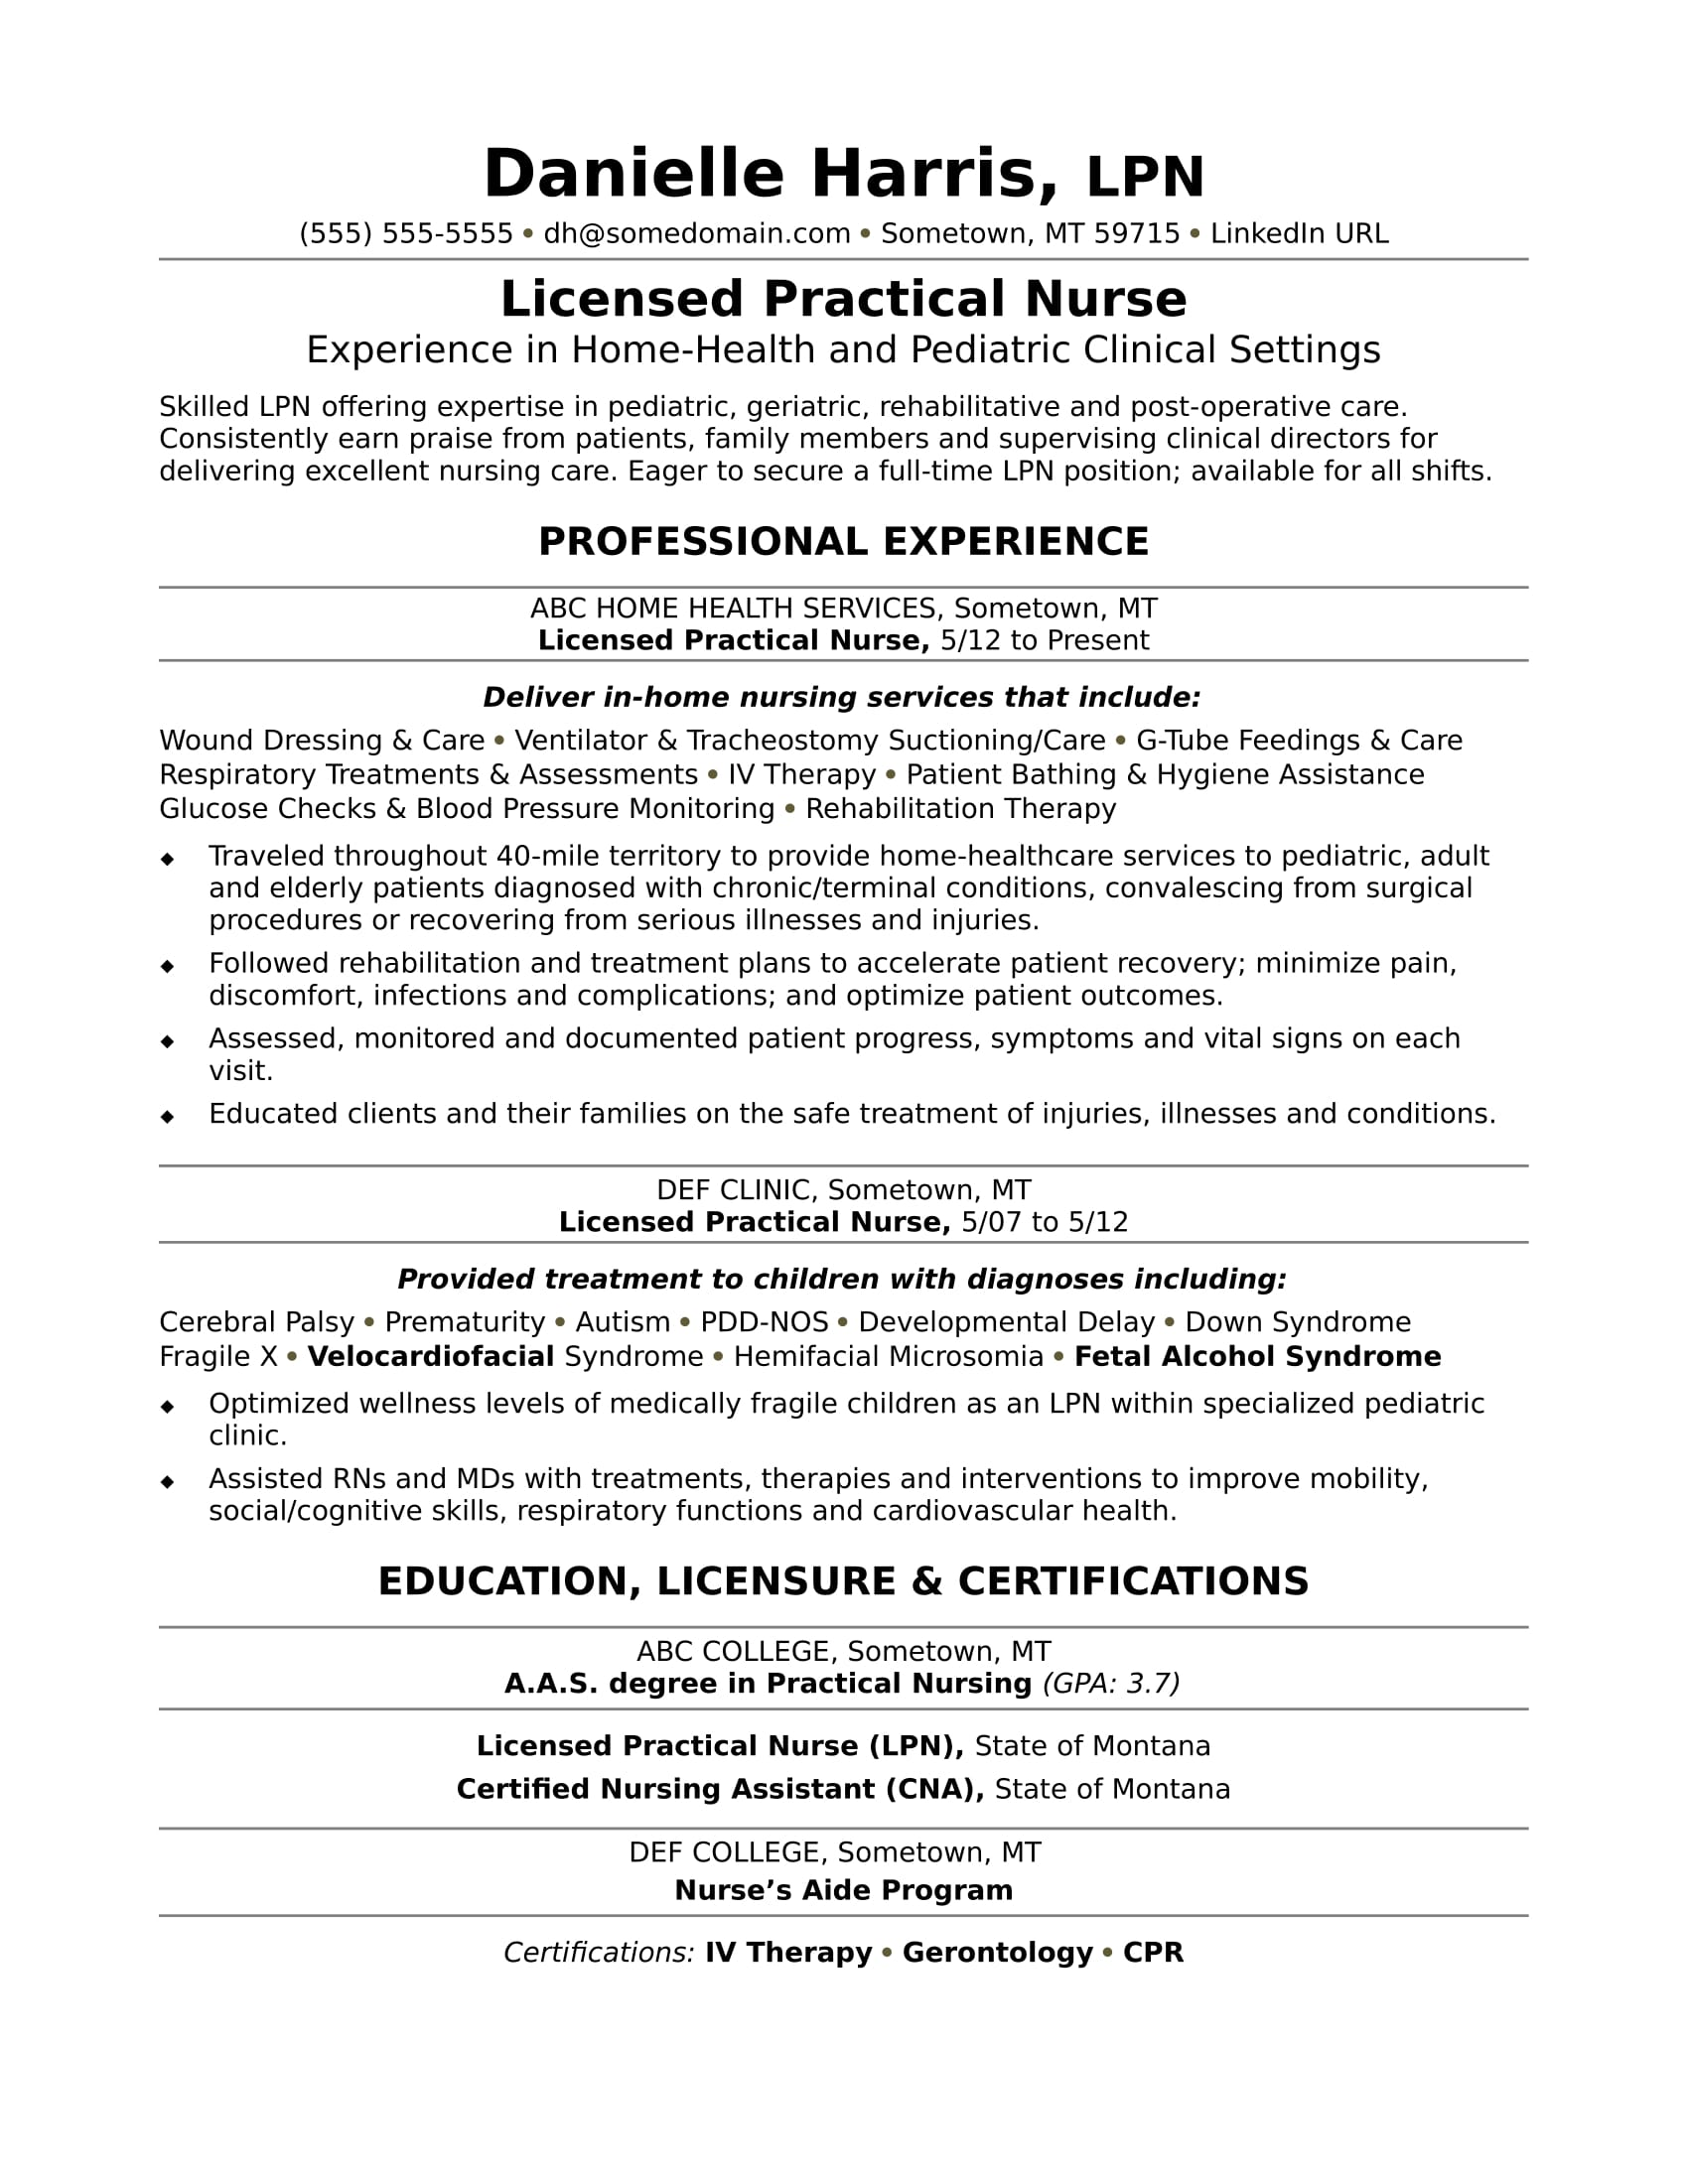 Captivating Licensed Practical Nurse Resume Sample